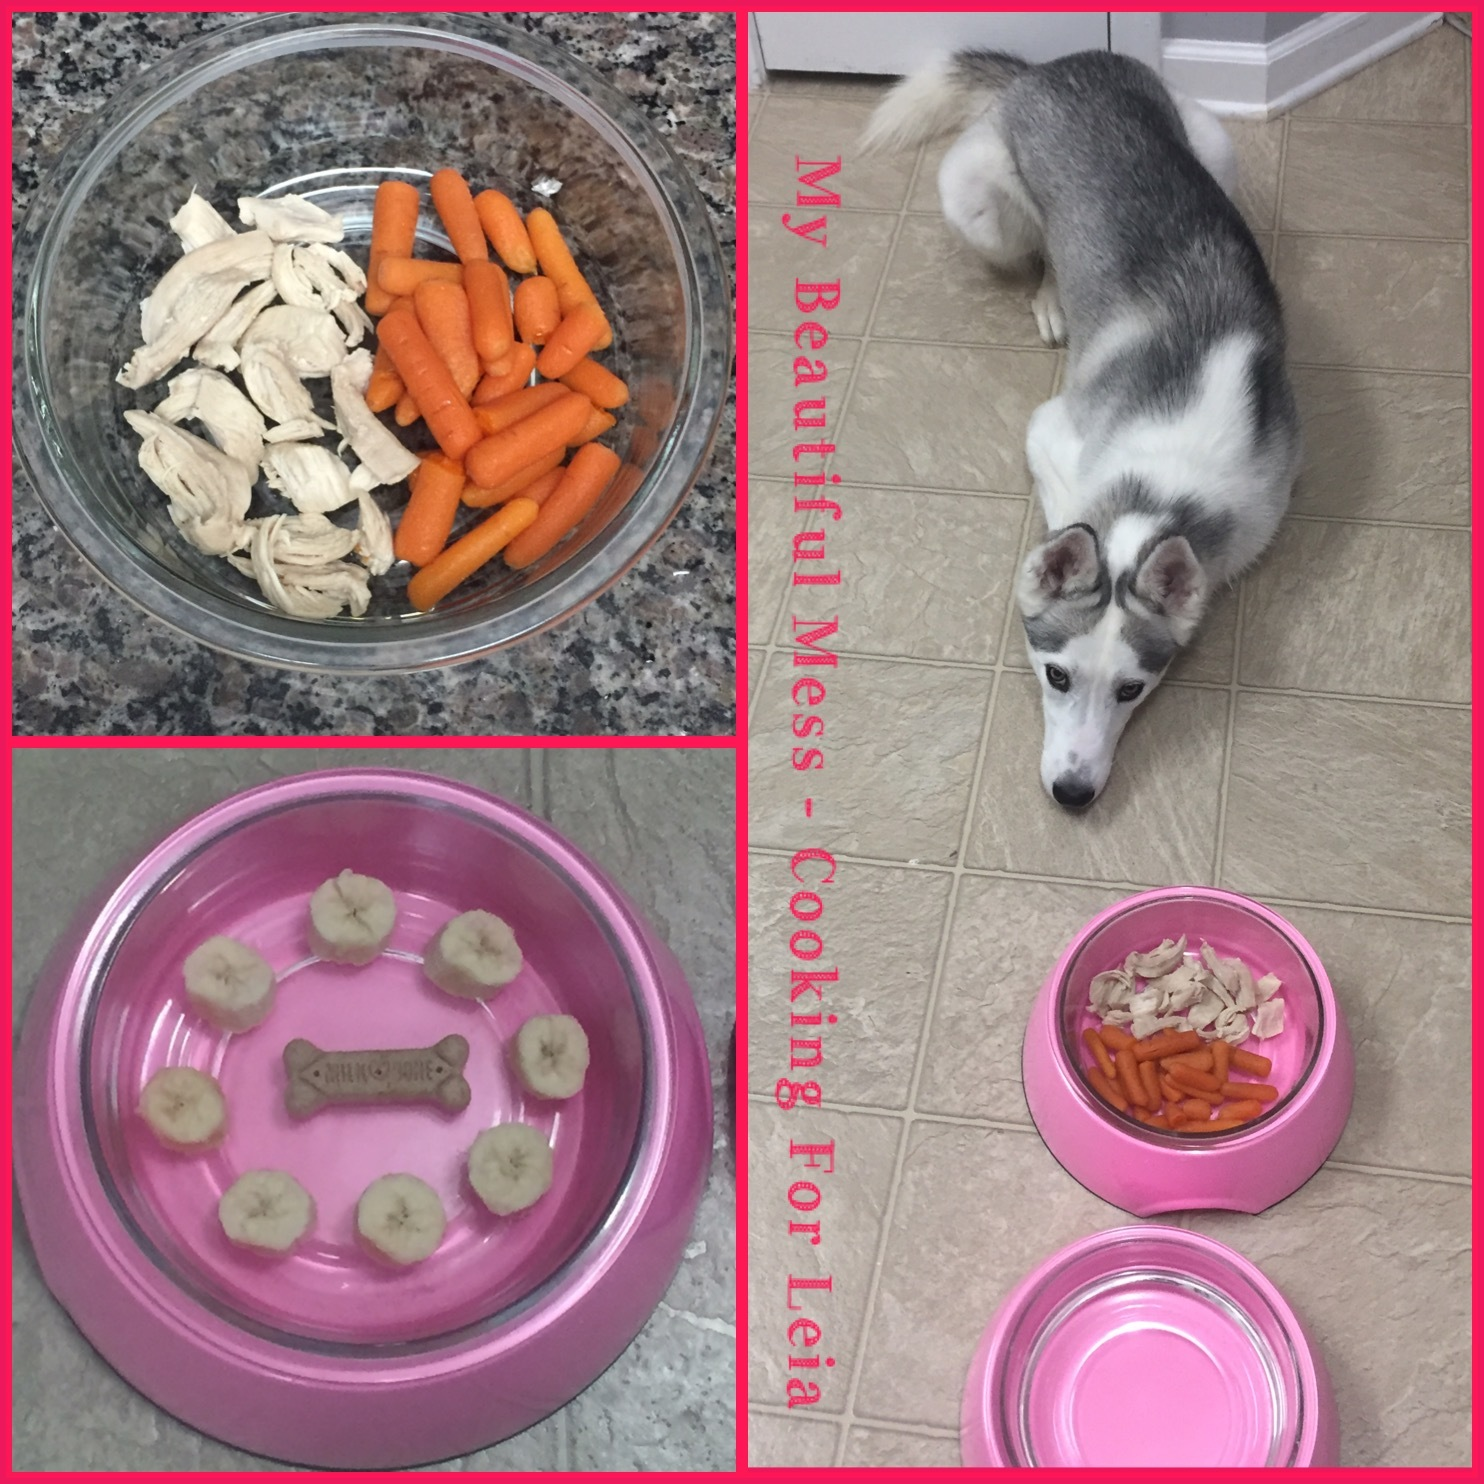 My Beautiful Mess - Cooking for Leia (my dog)